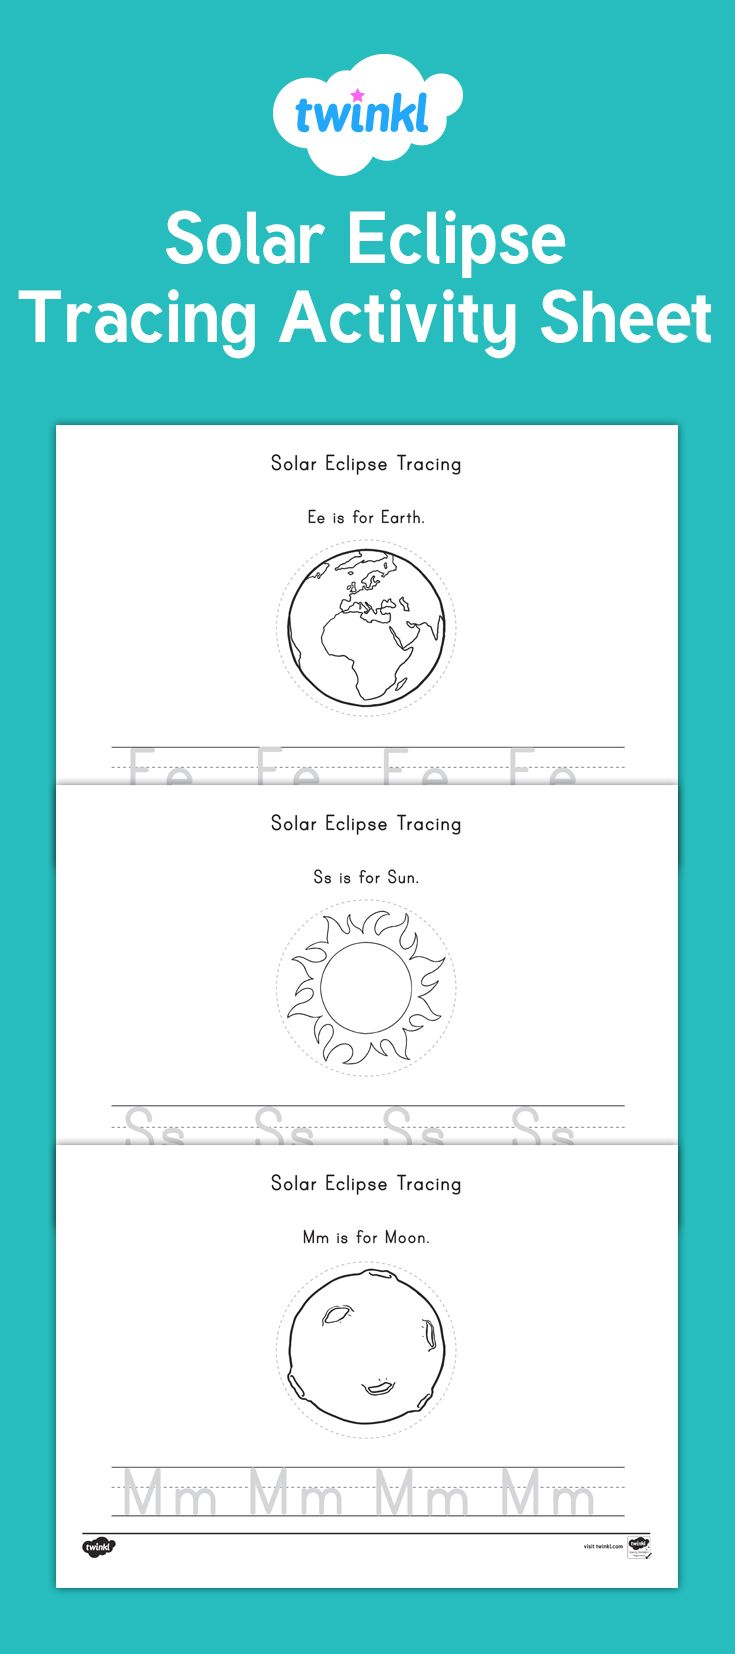 Colouring sheets of the lunar eclipse - Solar Eclipse Tracing Activity Have Your Children Practice Their Handwriting With This Fantastic Space And